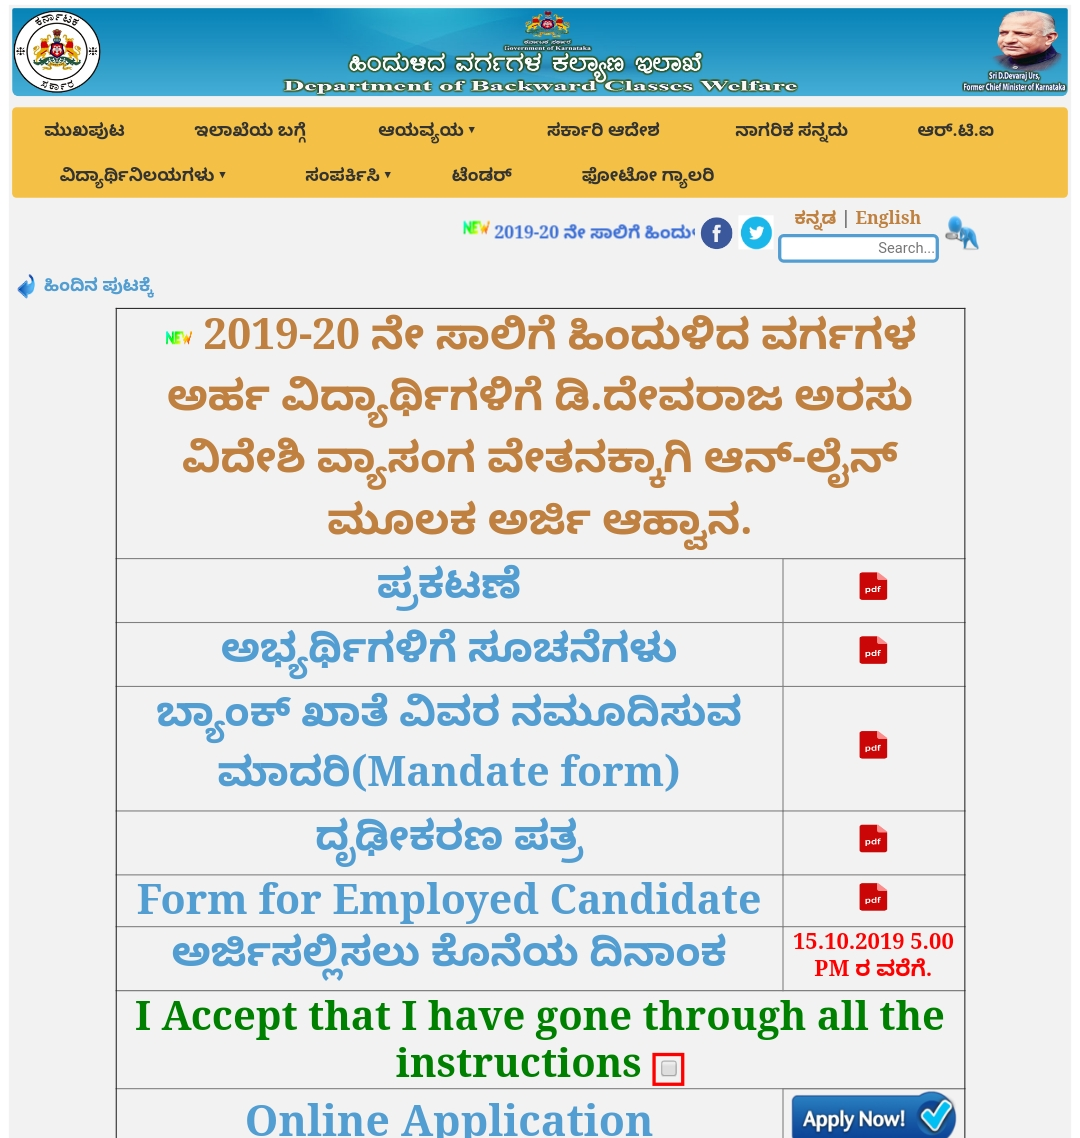 D.Devarajah King invites online students for backward classes for the year 2019-20